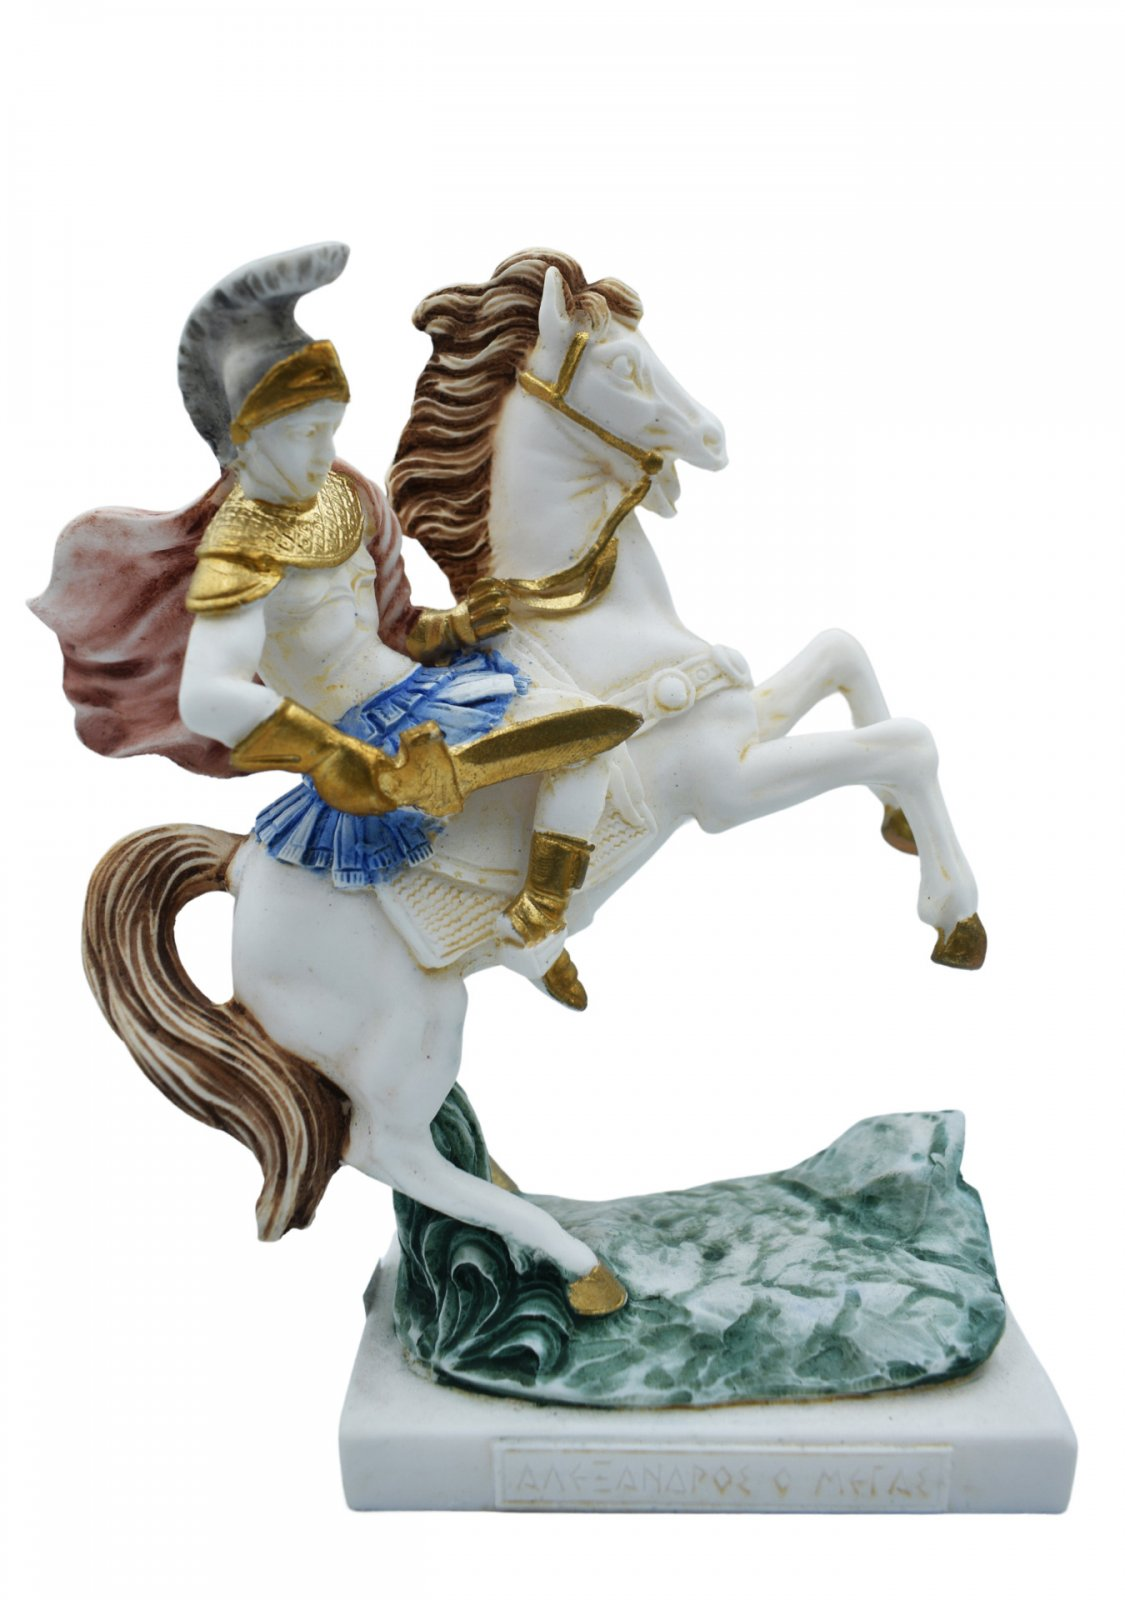 Alexander The Great riding Bucephalus, alabaster statue with color